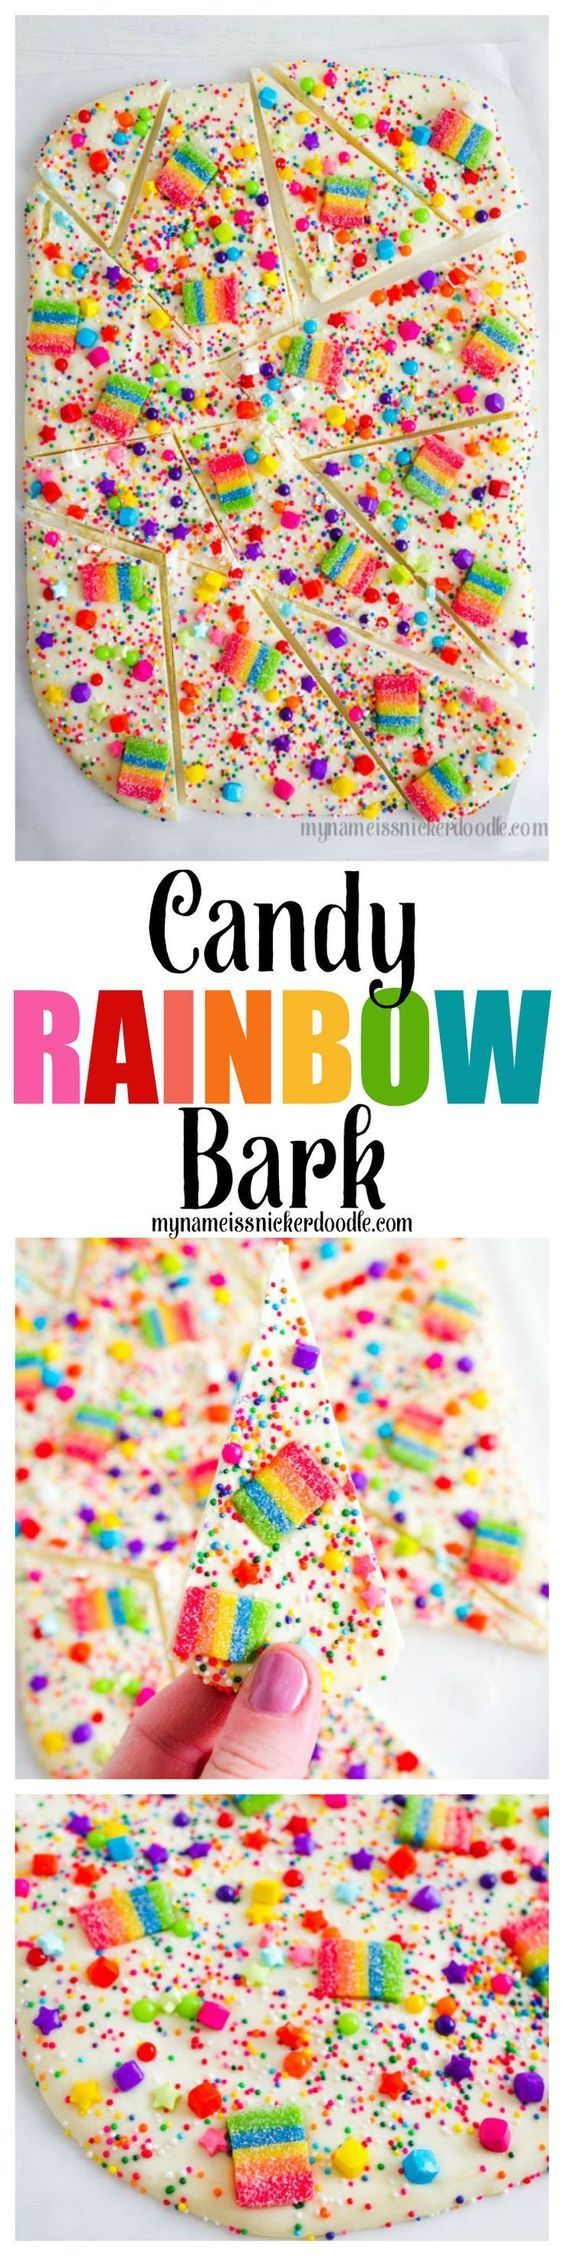 Oh my adorableness!  This Candy Rainbow Bark would be perfect for a birthday party, St. Patrick's Day or just to cheer someone up!     http://mynameissnickerdoodle.com